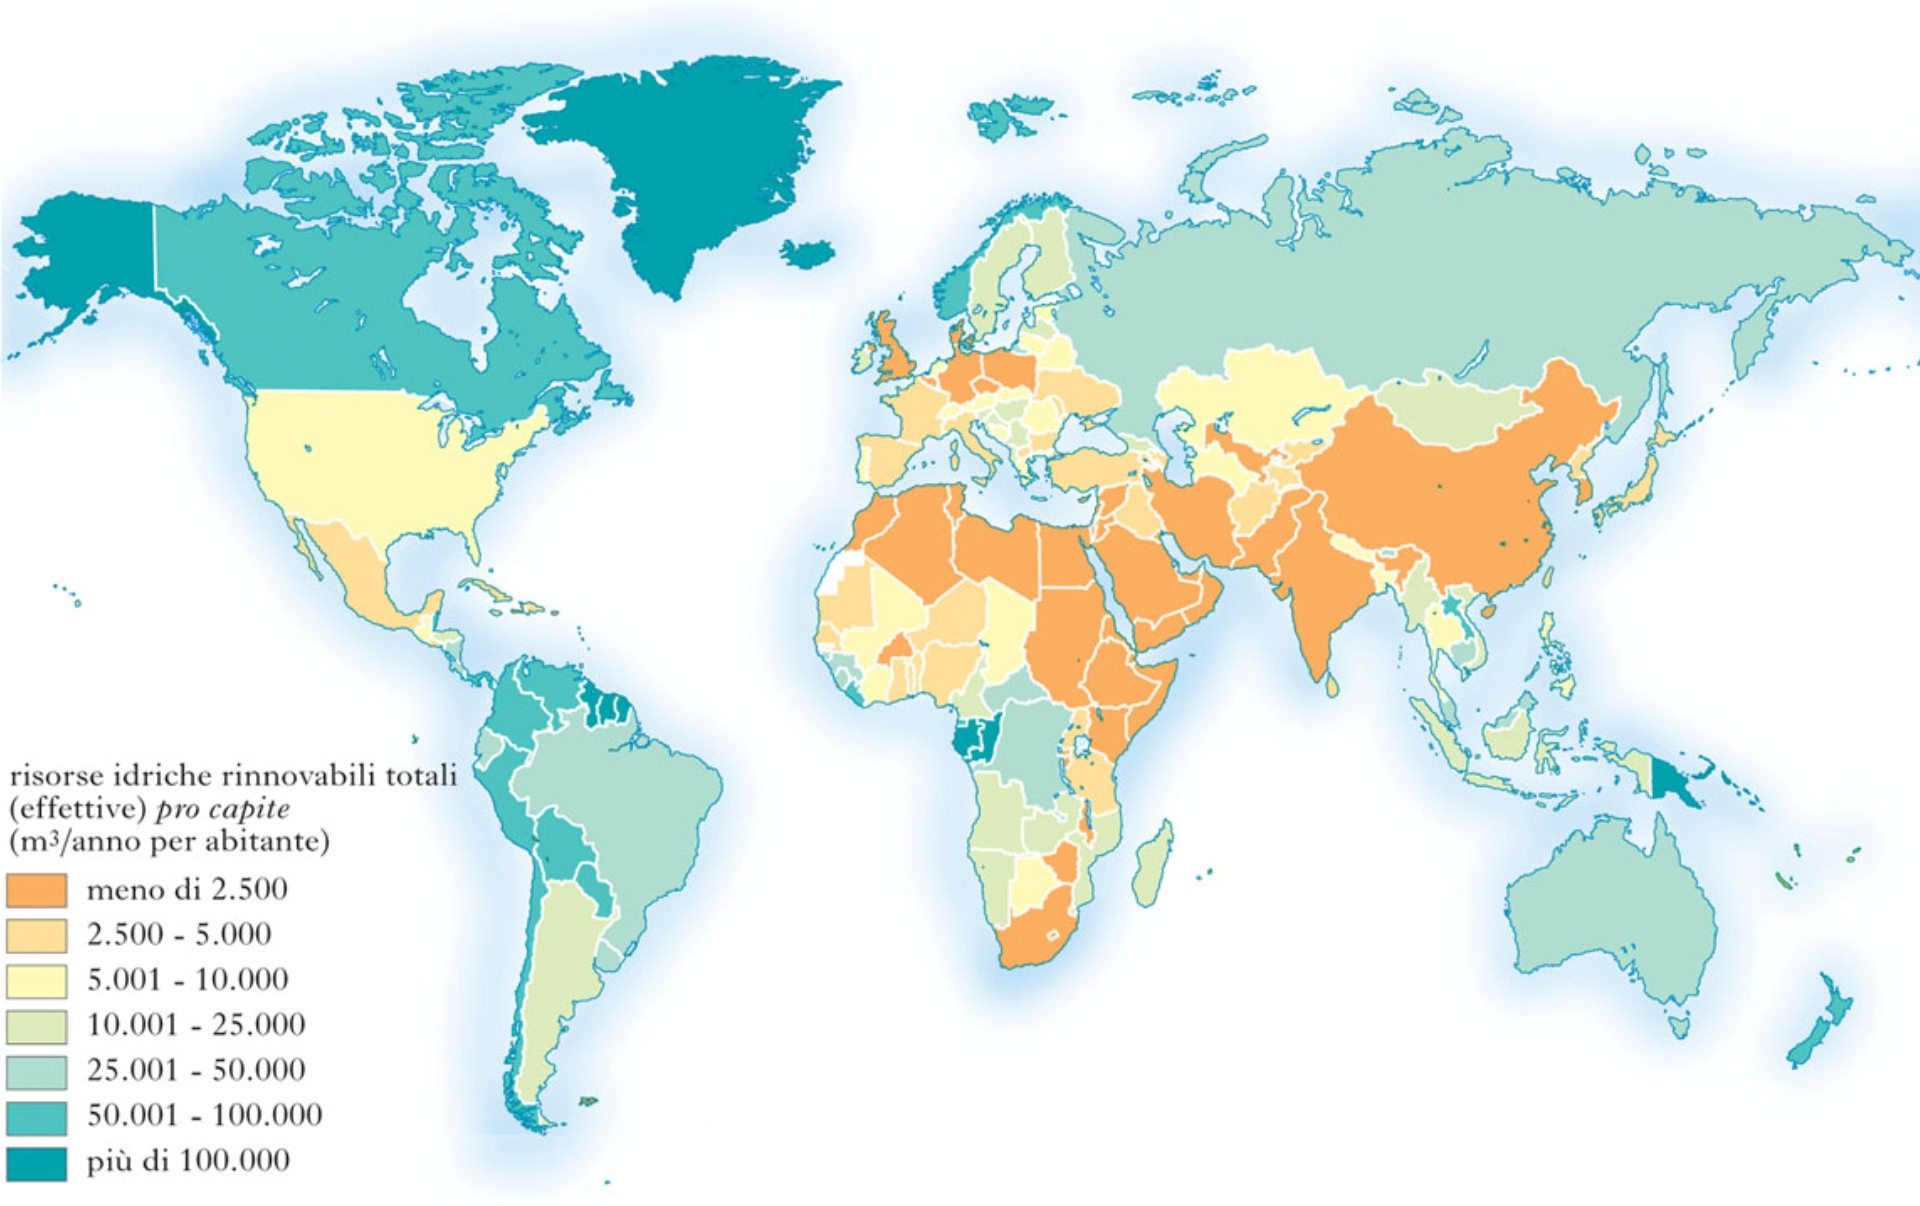 World Map Of Water Resources - World's poorest countries map